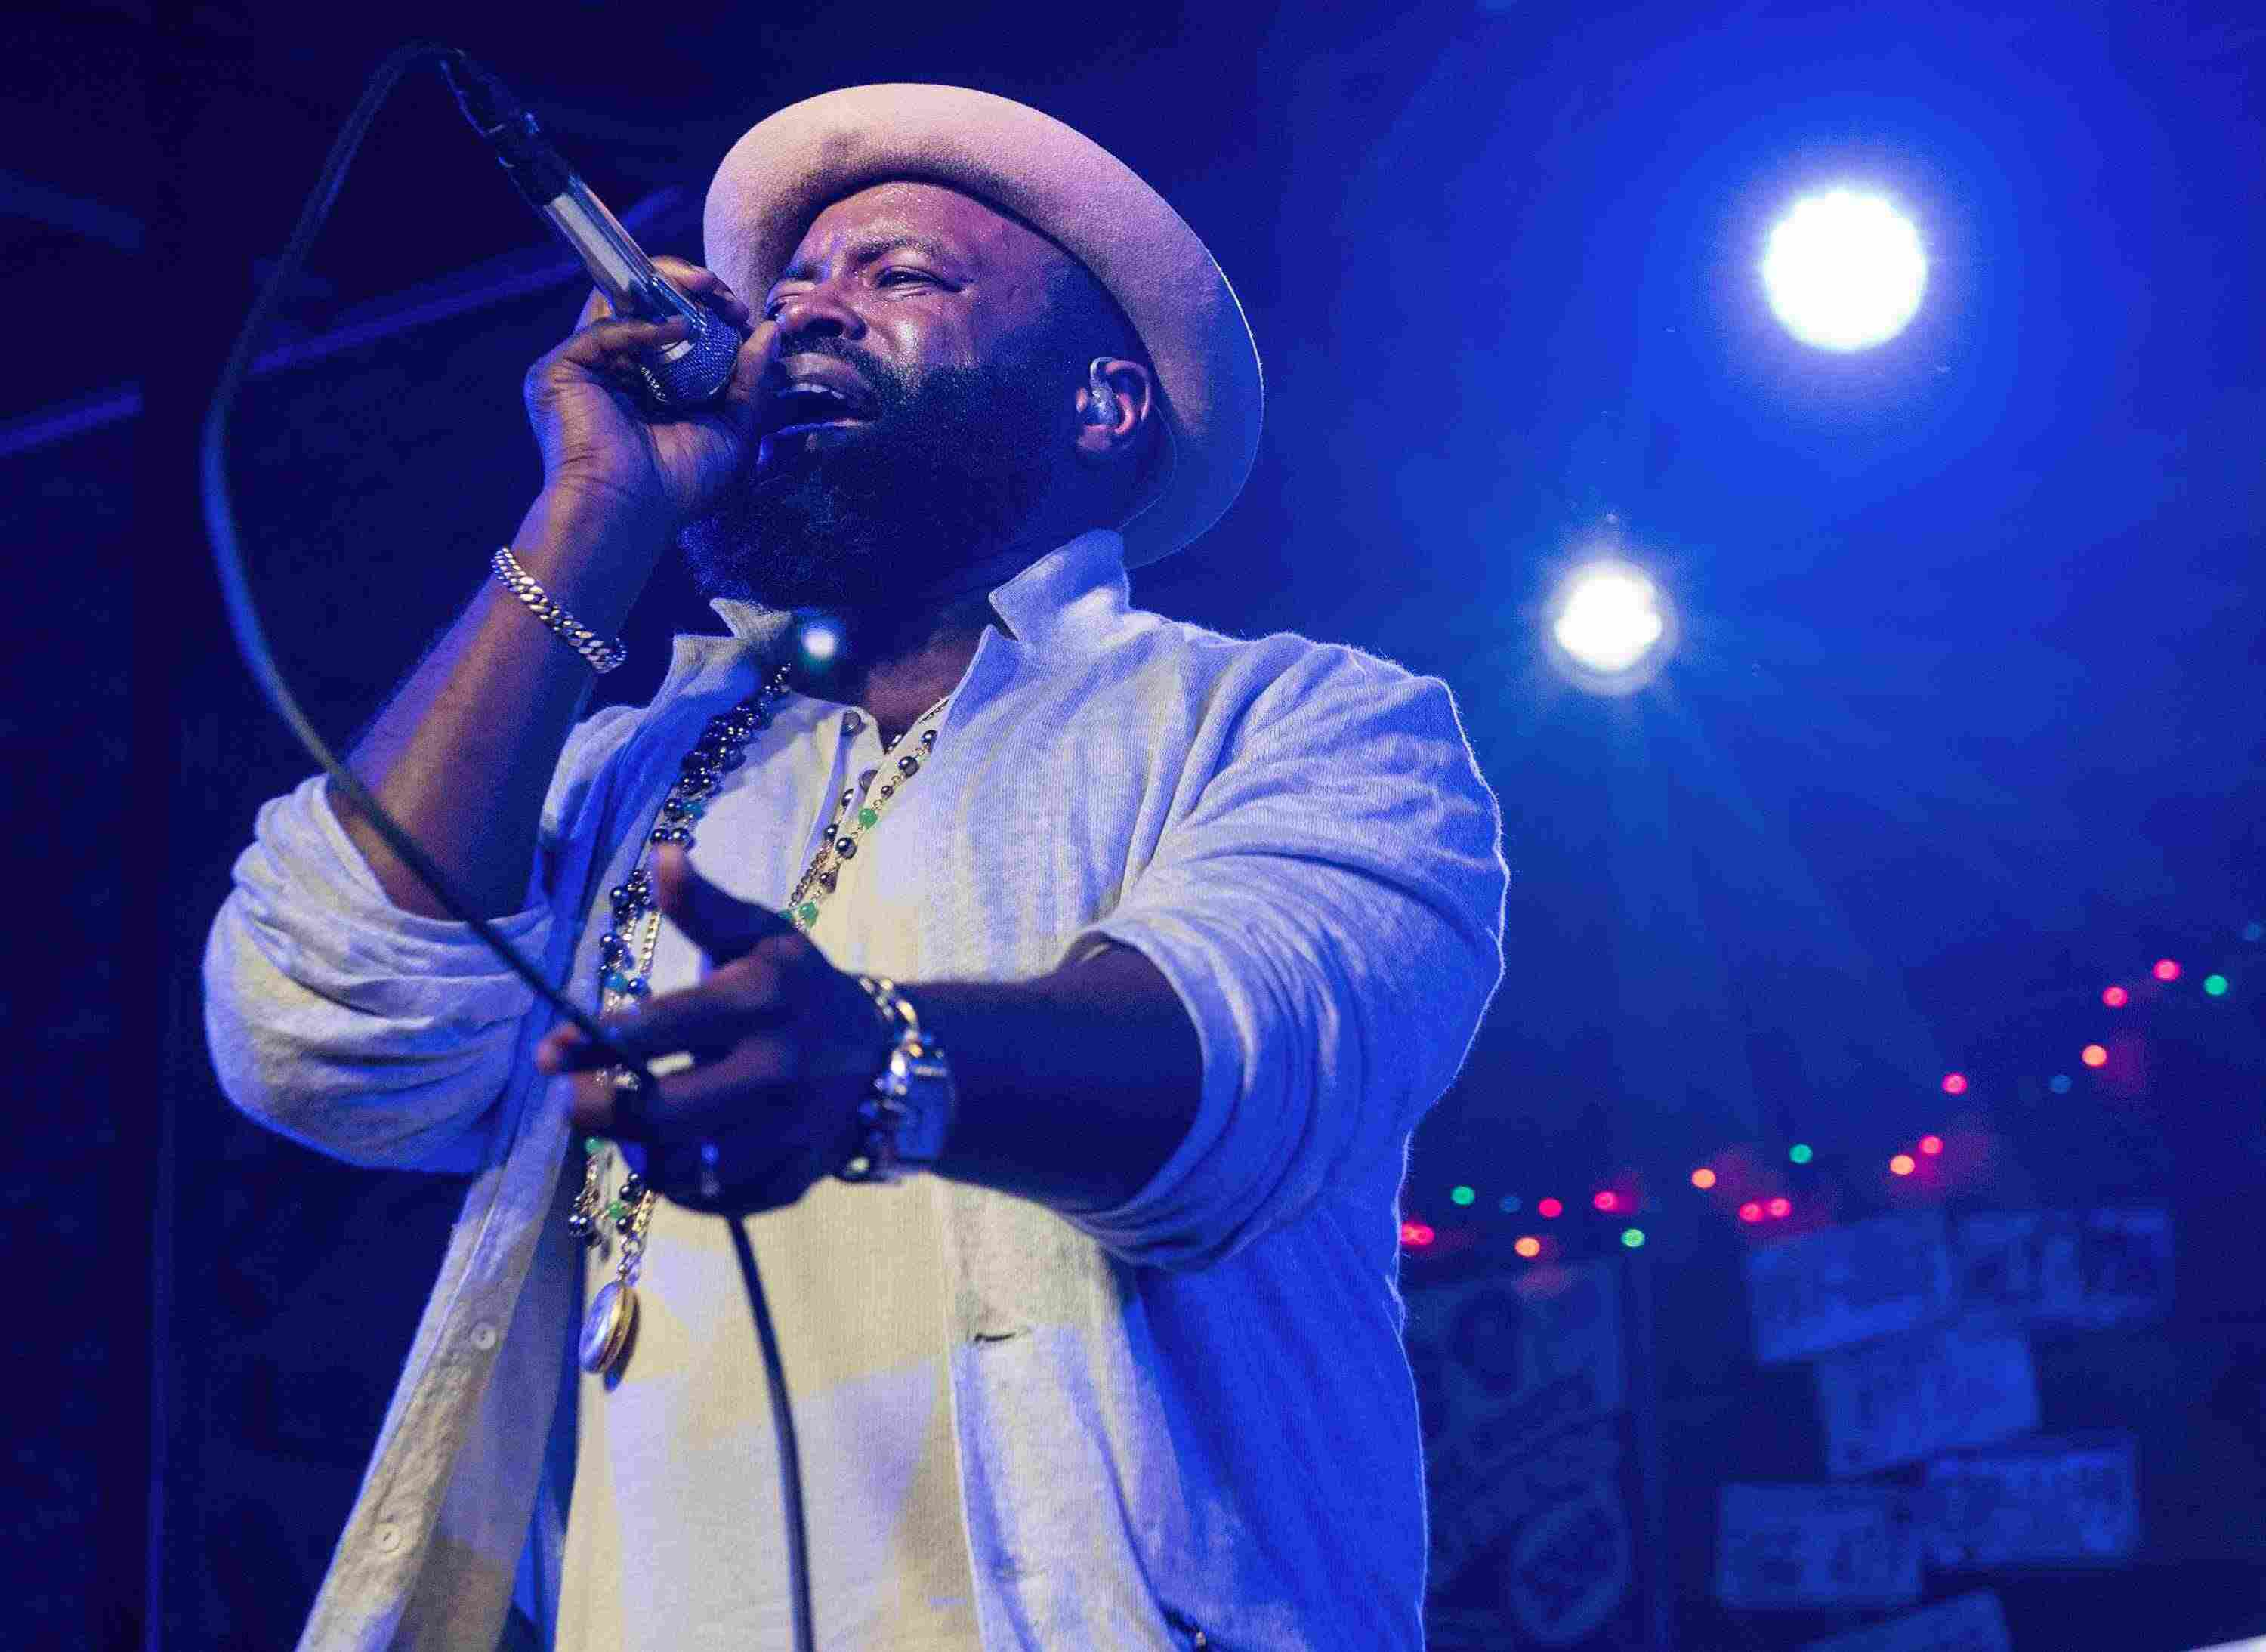 The Roots SXSW Performance Cancelled Due To Bomb Threat, Police Arrest Suspect